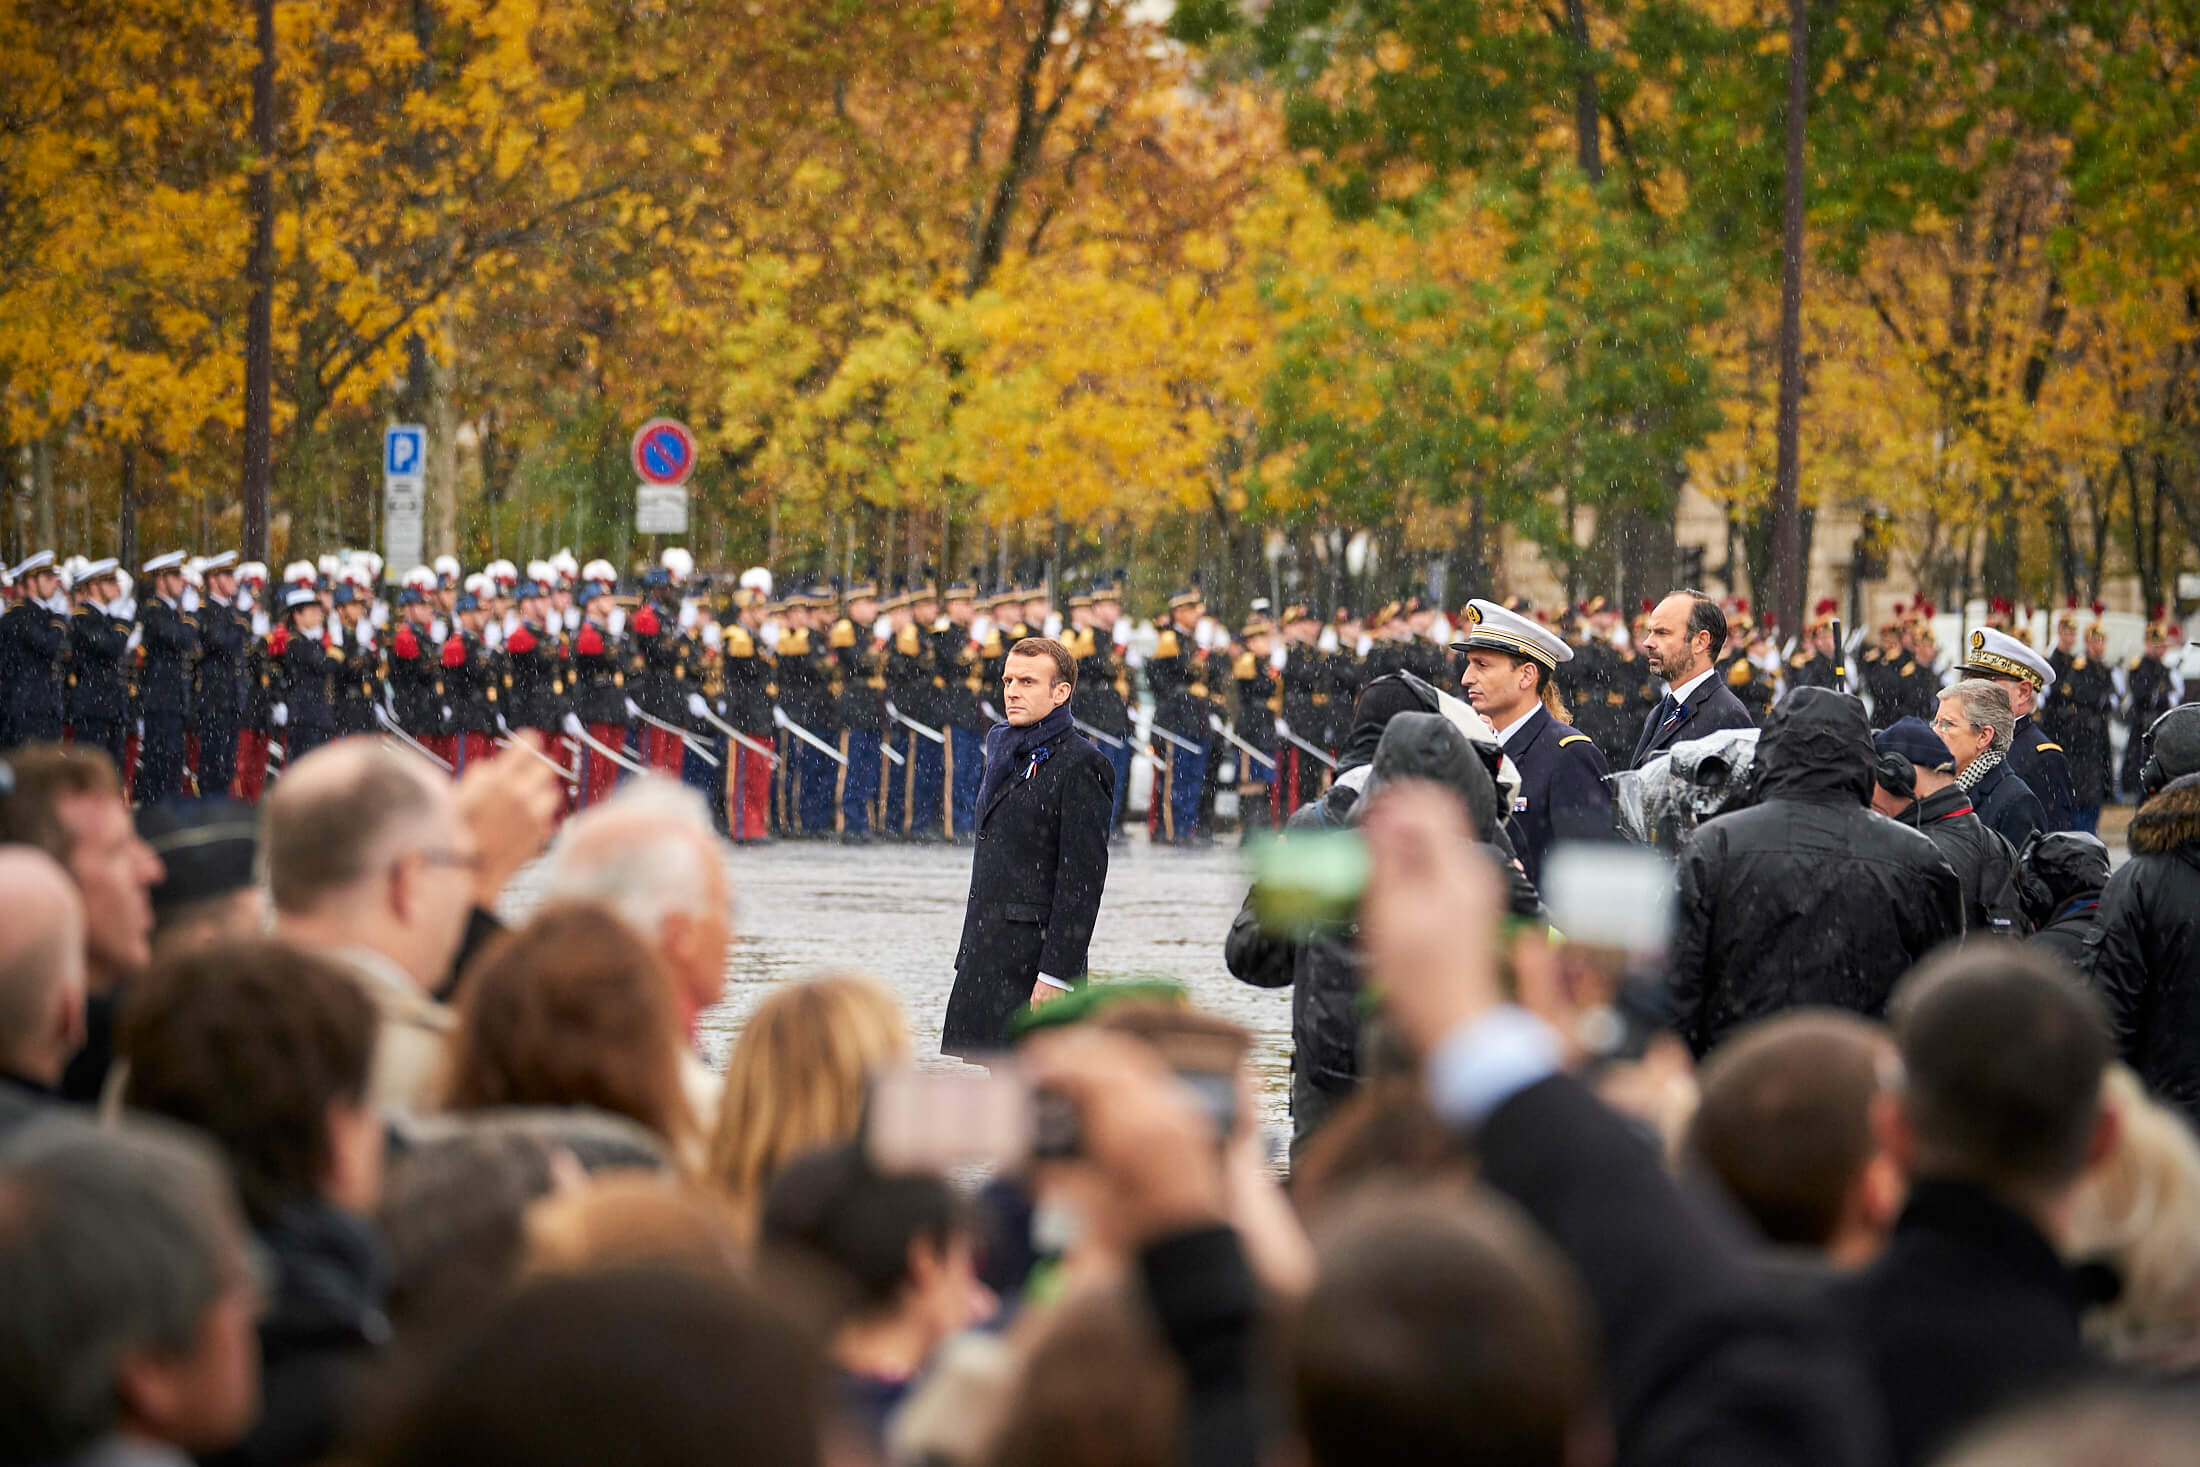 The French President Emmanuel Macron at the WWI Armistice Centenary commemorations in Paris. © NATO/Flickr